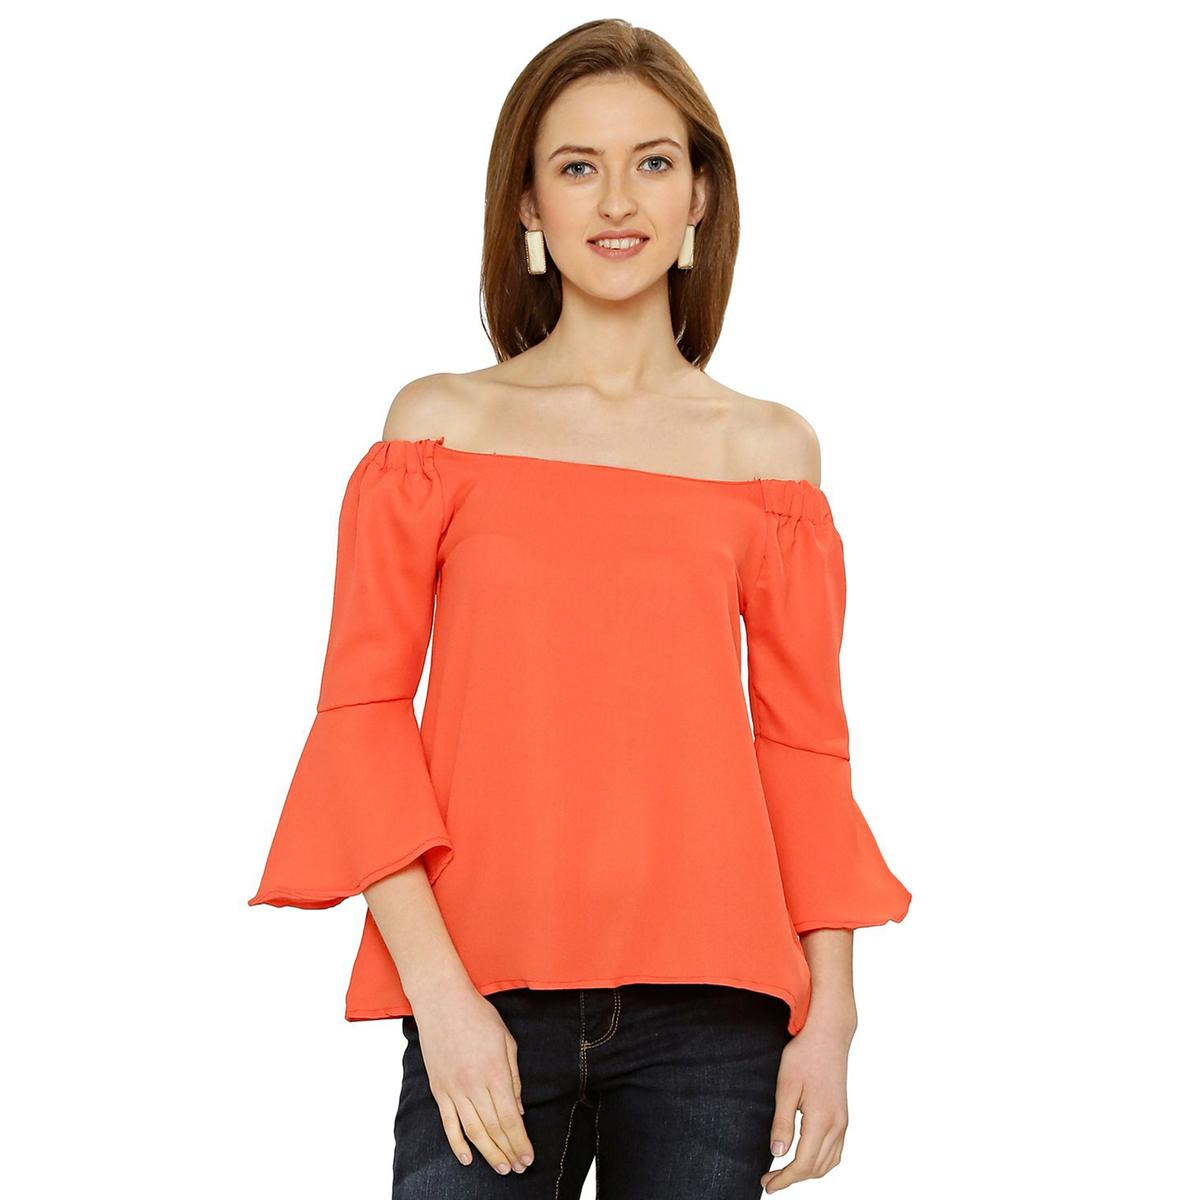 Chimpaaanzee - Orange Colored Casual Solid Polyester Top